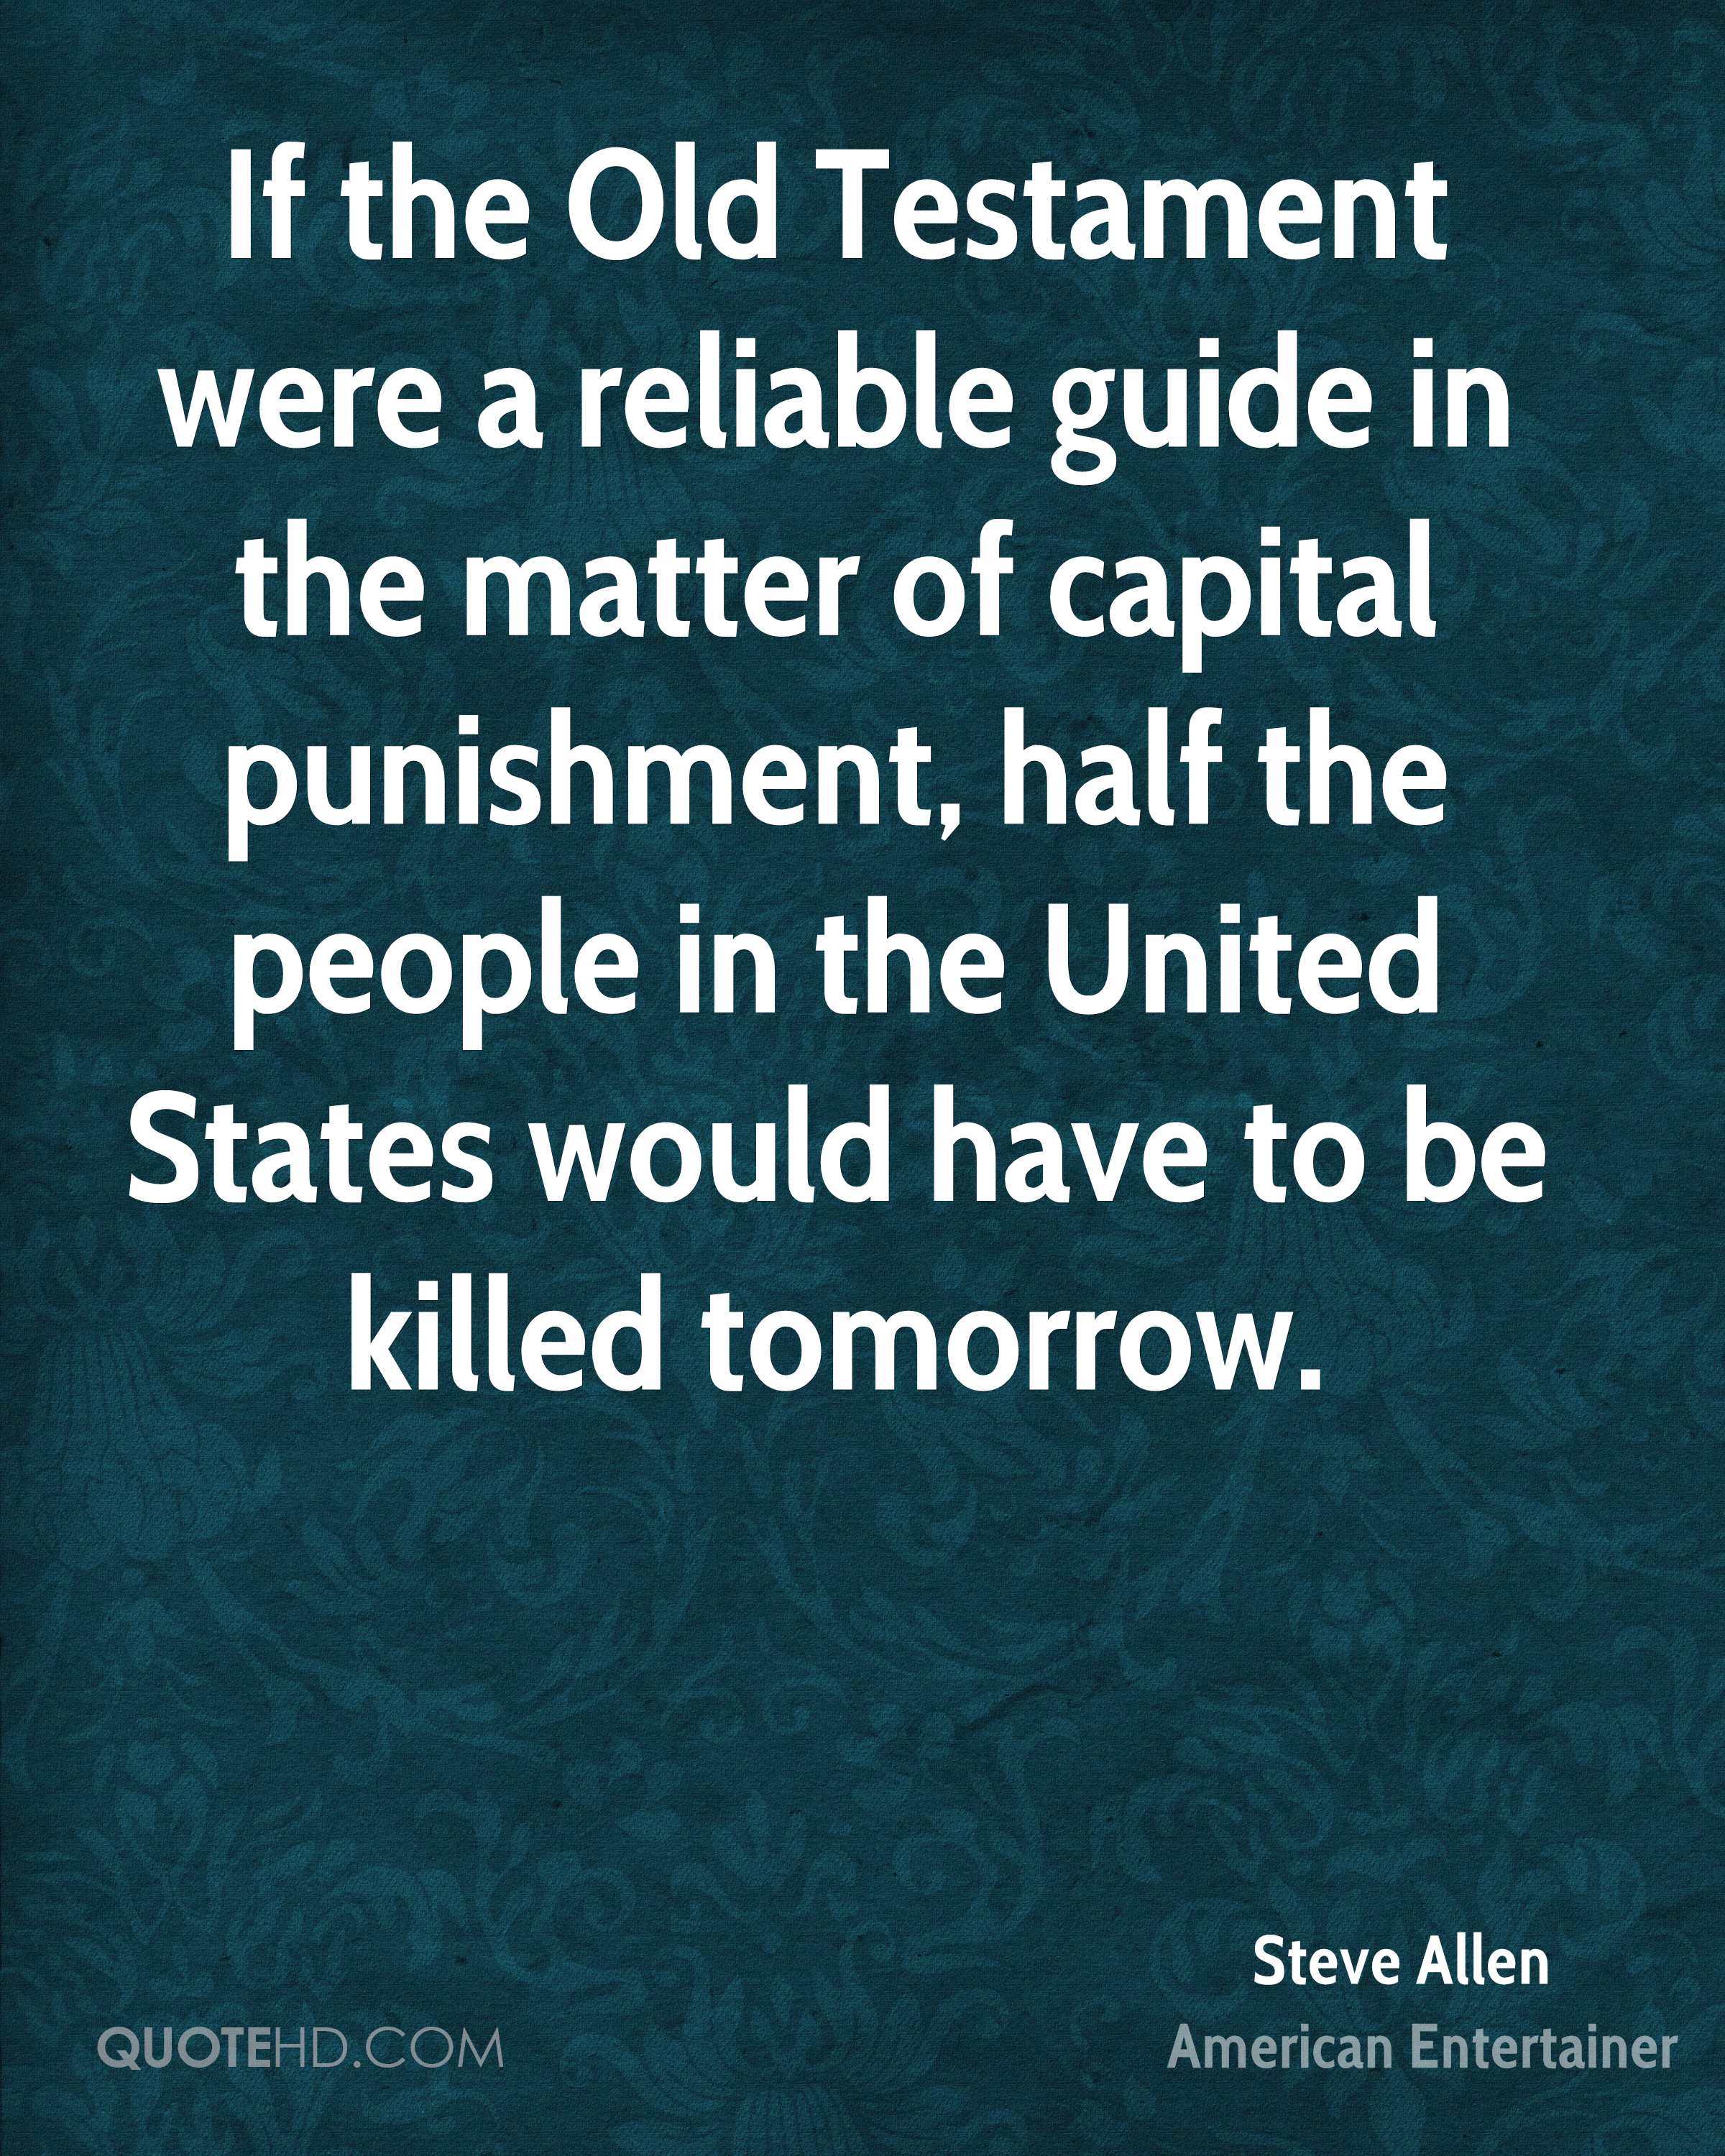 If the Old Testament were a reliable guide in the matter of capital punishment, half the people in the United States would have to be killed tomorrow.